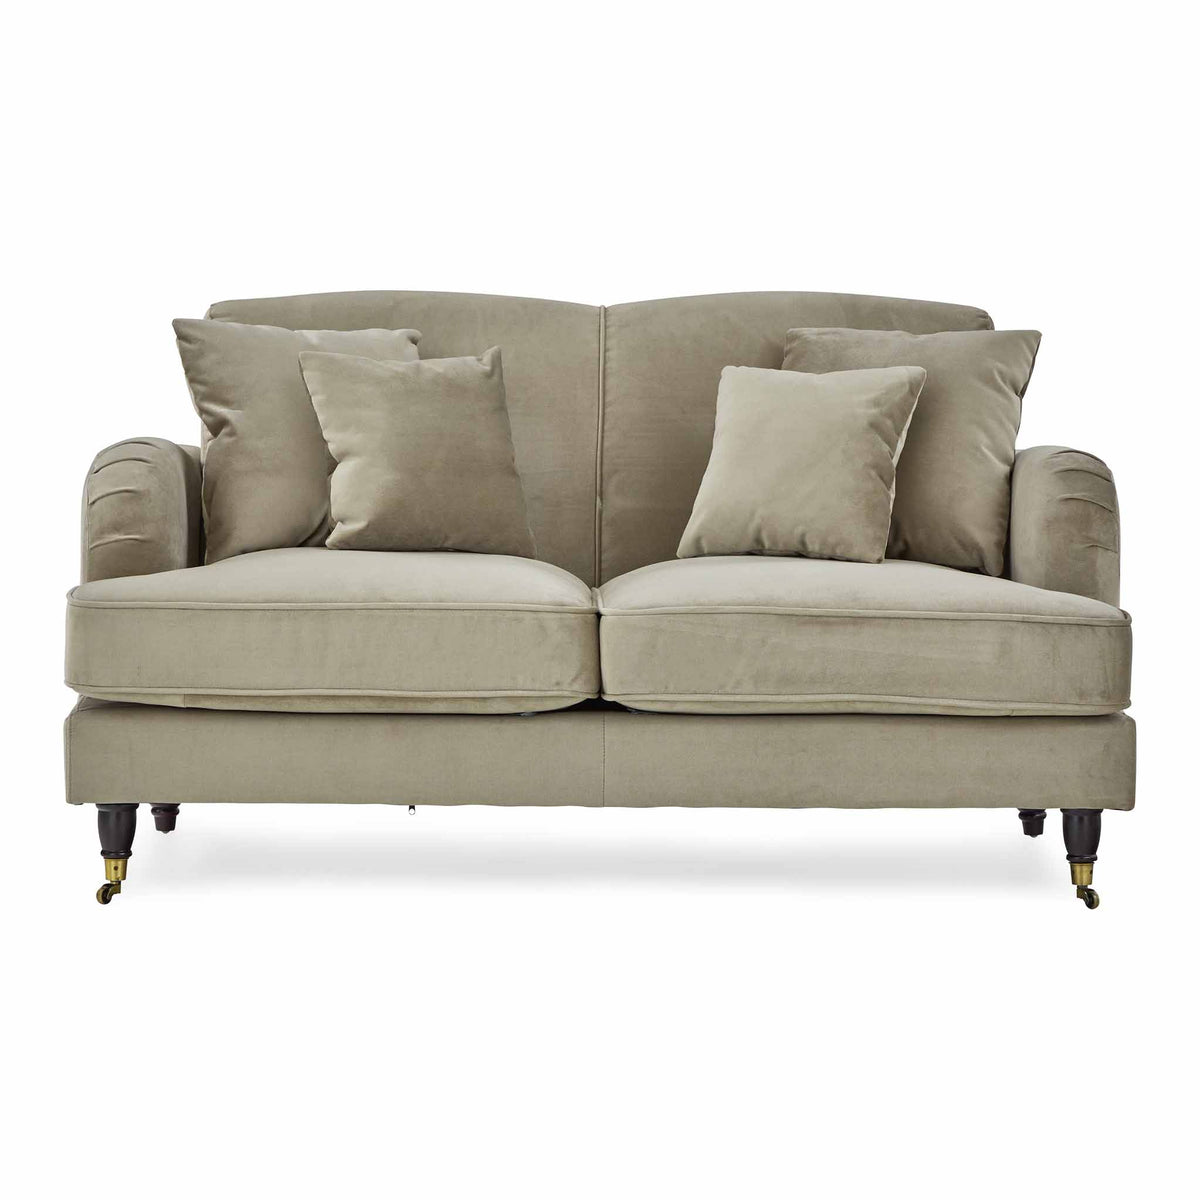 Piper Putty Velvet 2 Seater Sofa from Roseland Furniture